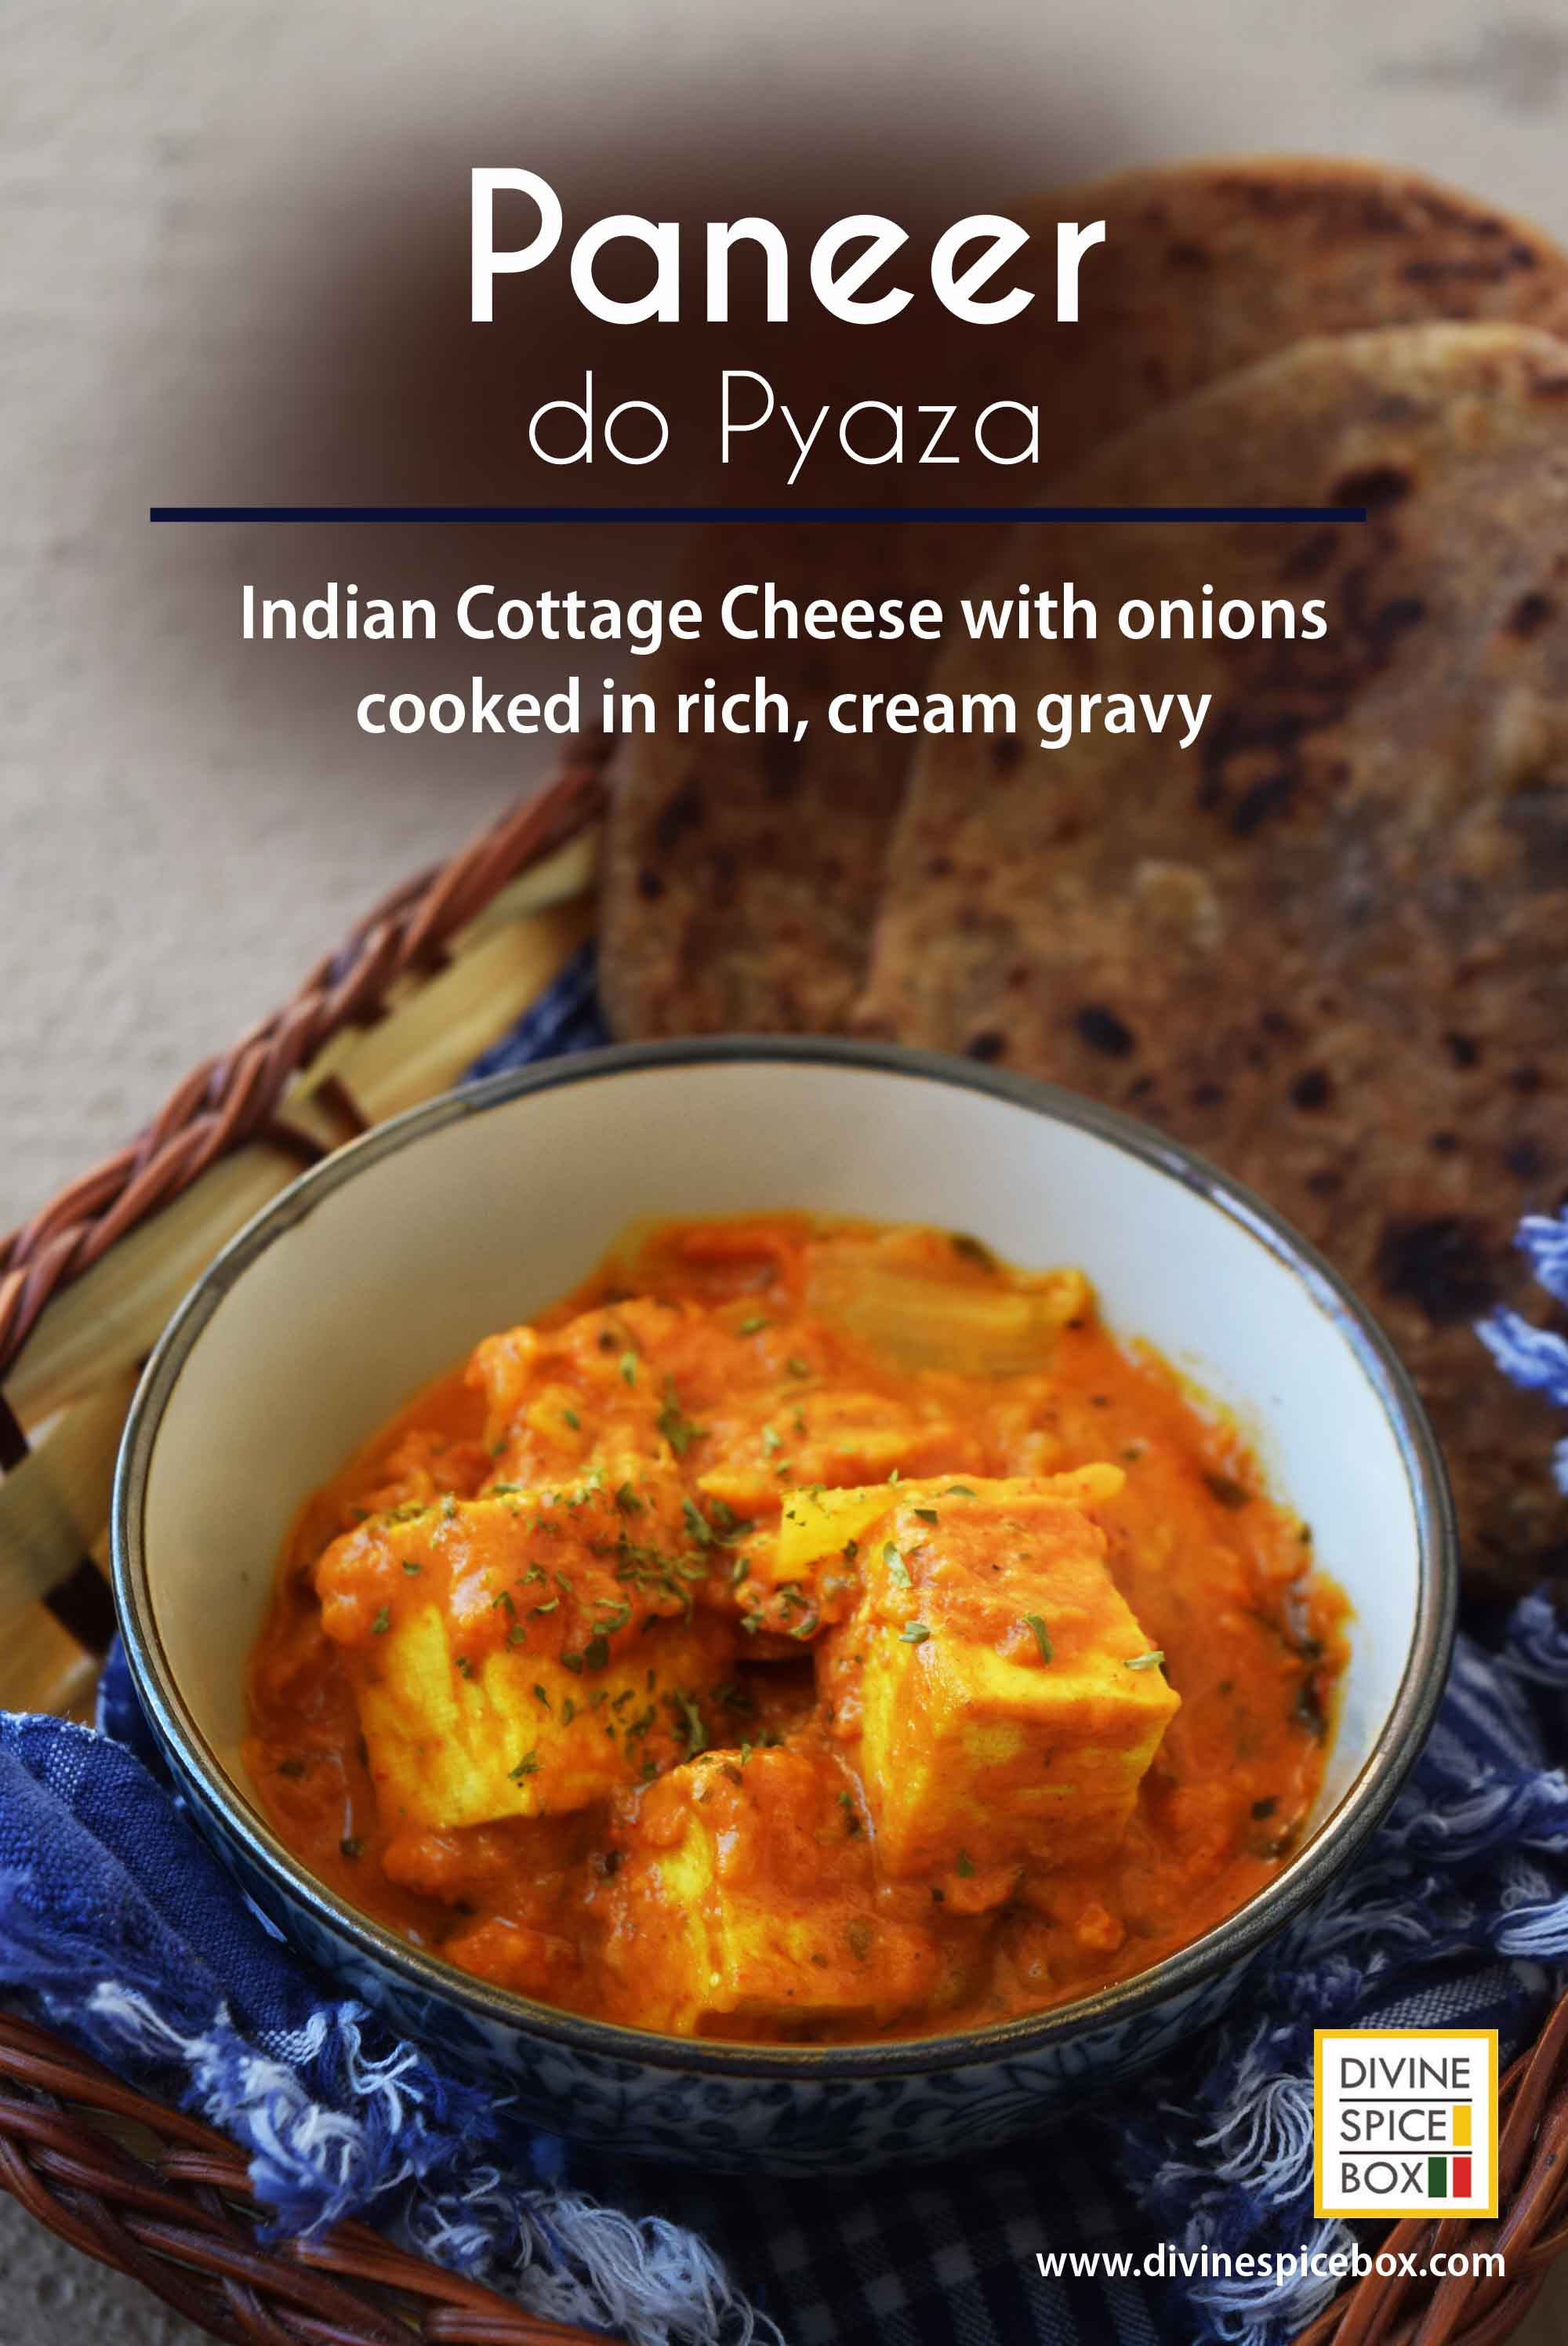 Paneer do Pyaza - Indian Cottage Cheese with Onions cooked in tomato gravy